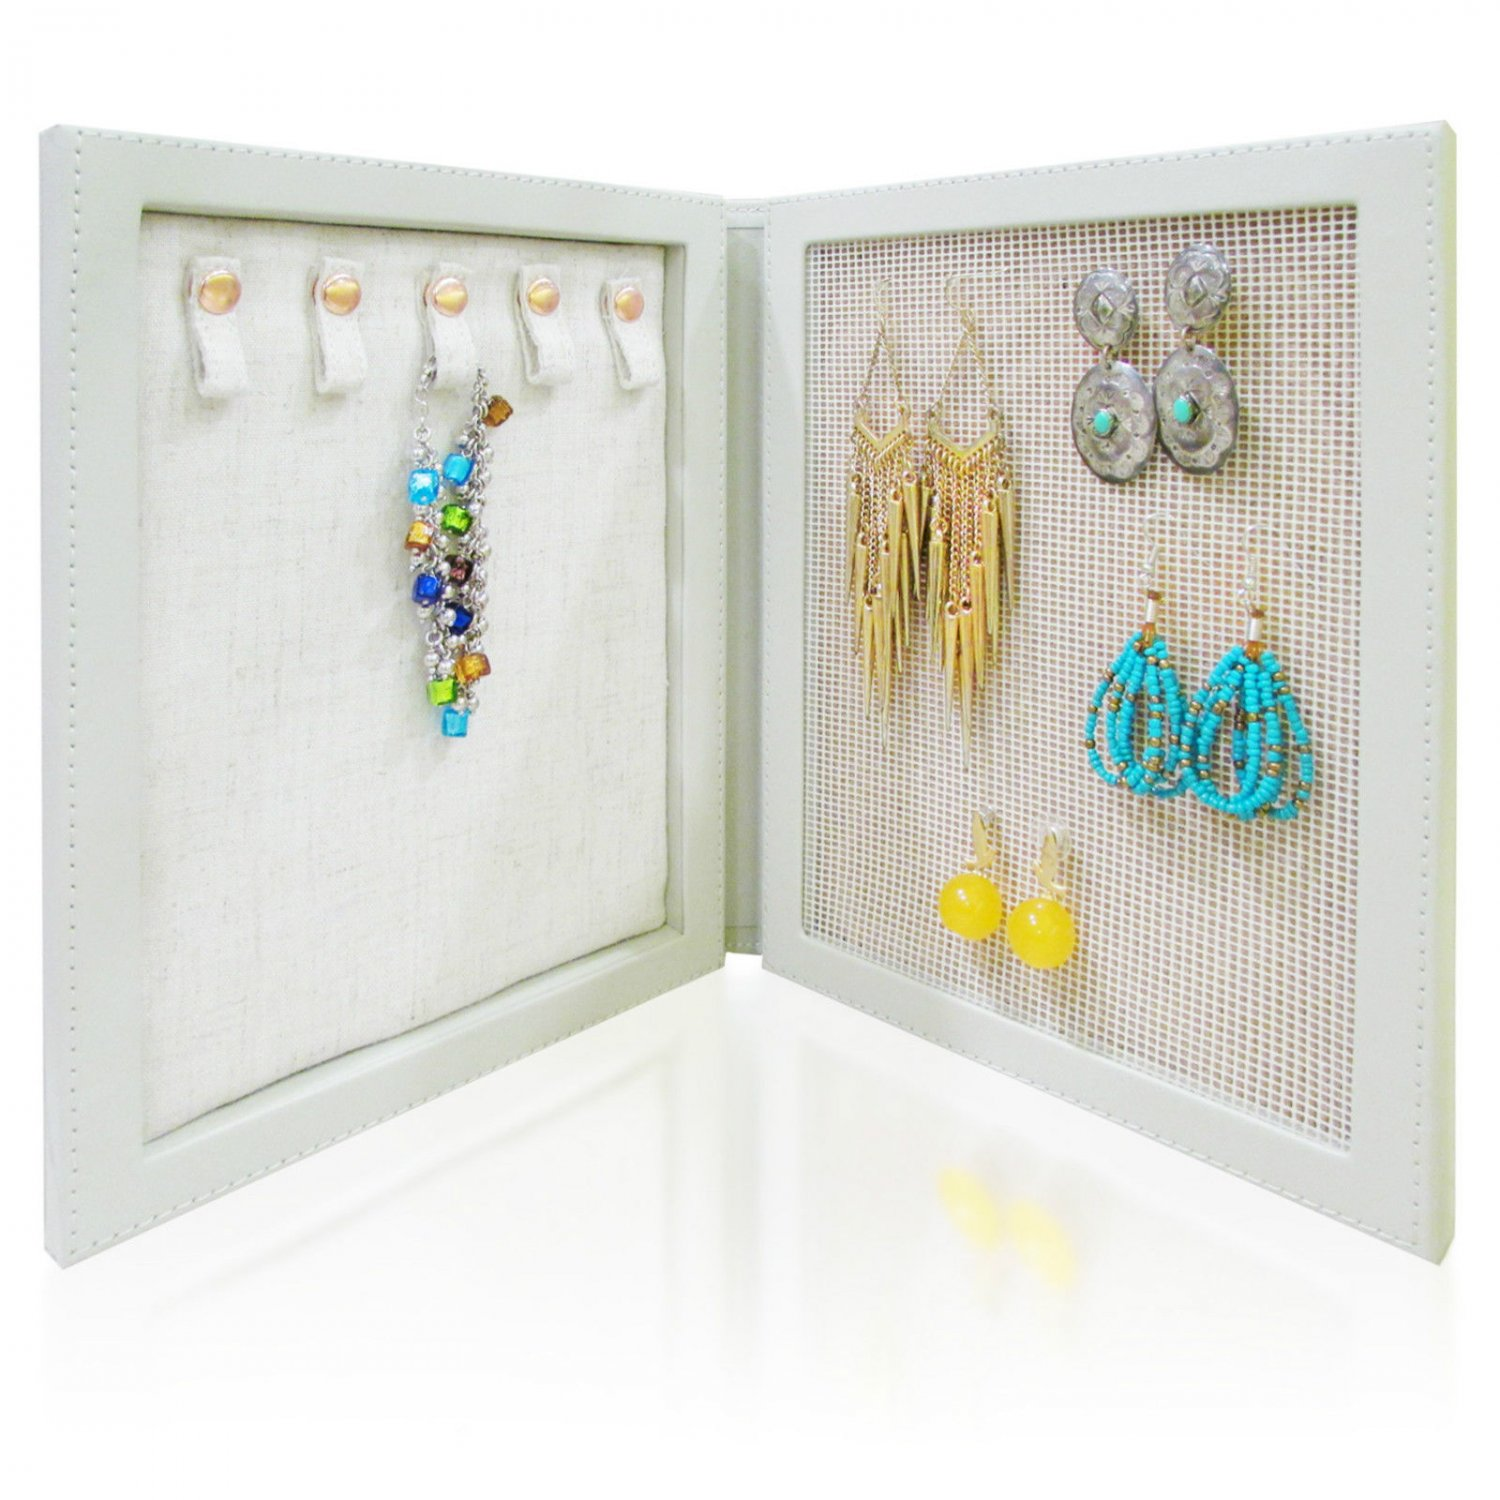 Travel Magnetic Jewelry Book Clutch Storage Organizer Case Box - Earrings Bracelet Necklace (Grey-O)